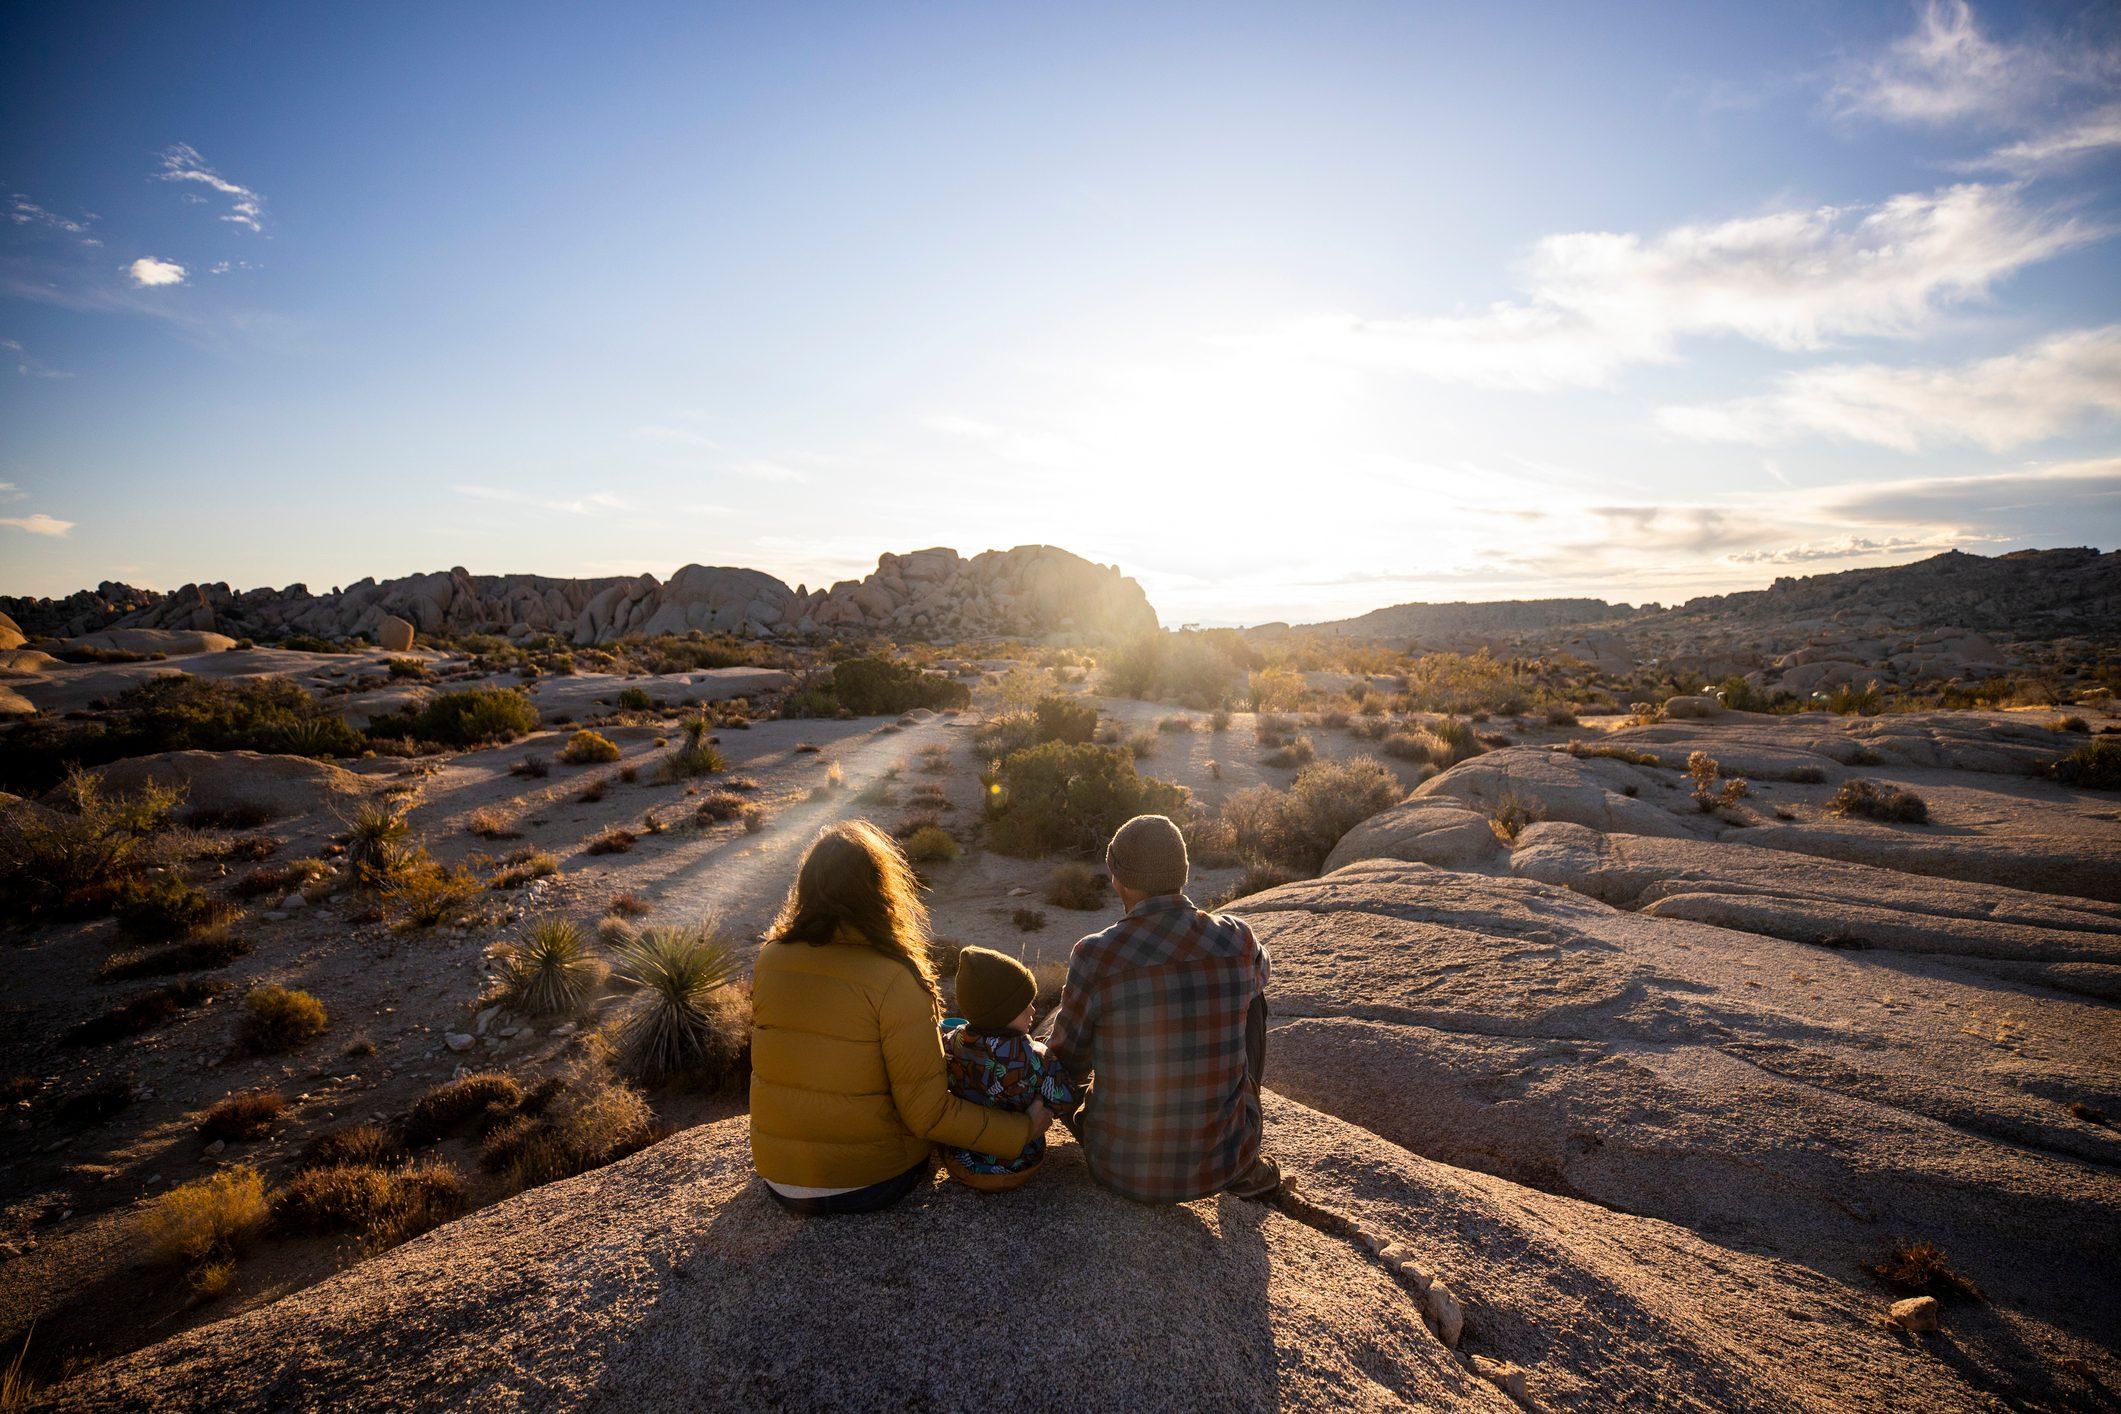 A family sitting on a rock taking in a sunset over the desert.